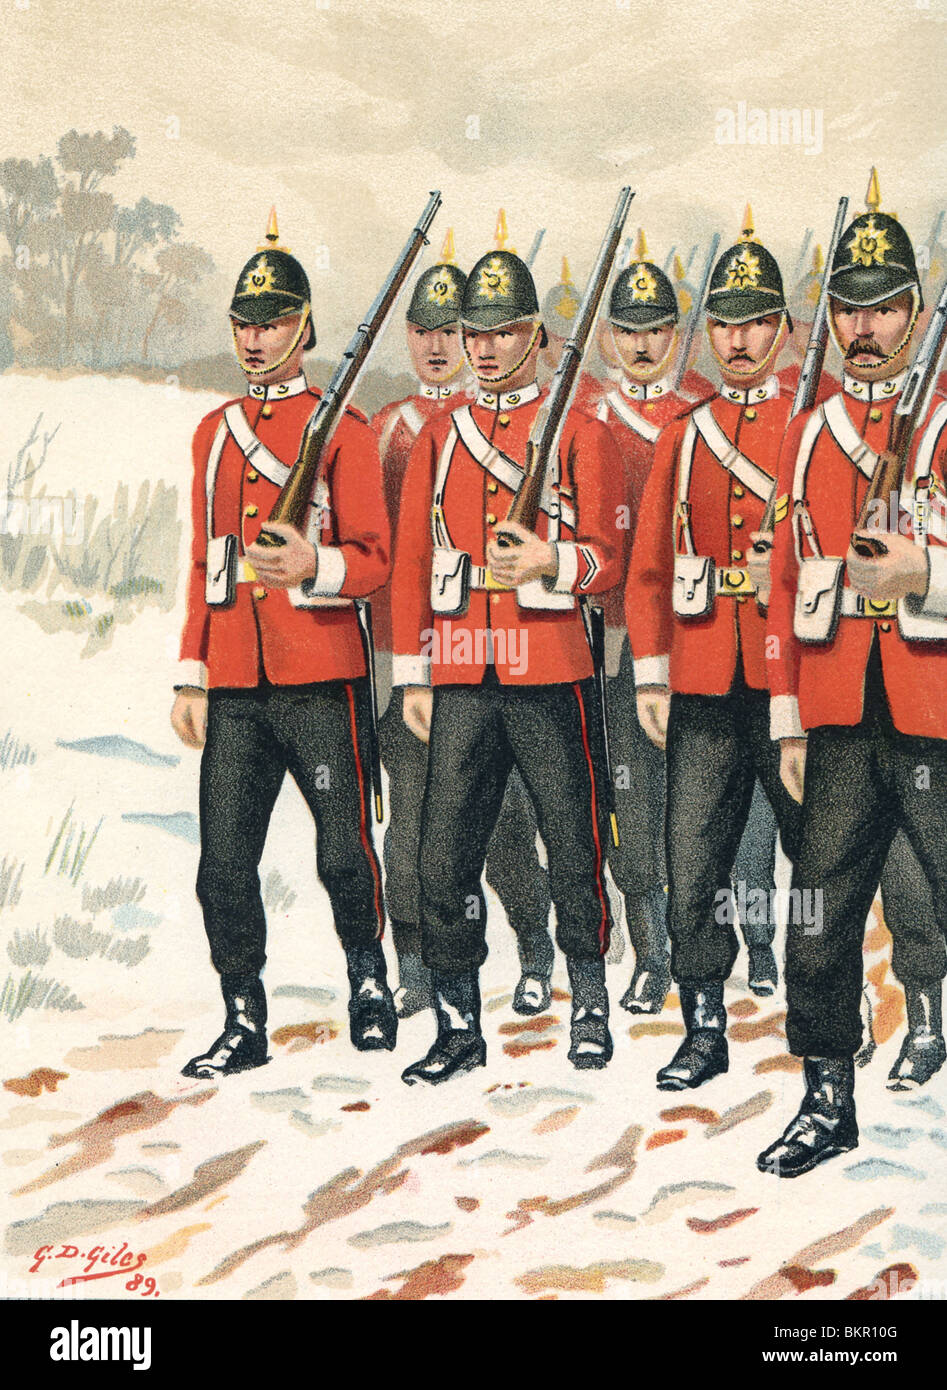 The 68th - Durham Light Infantry - Stock Image